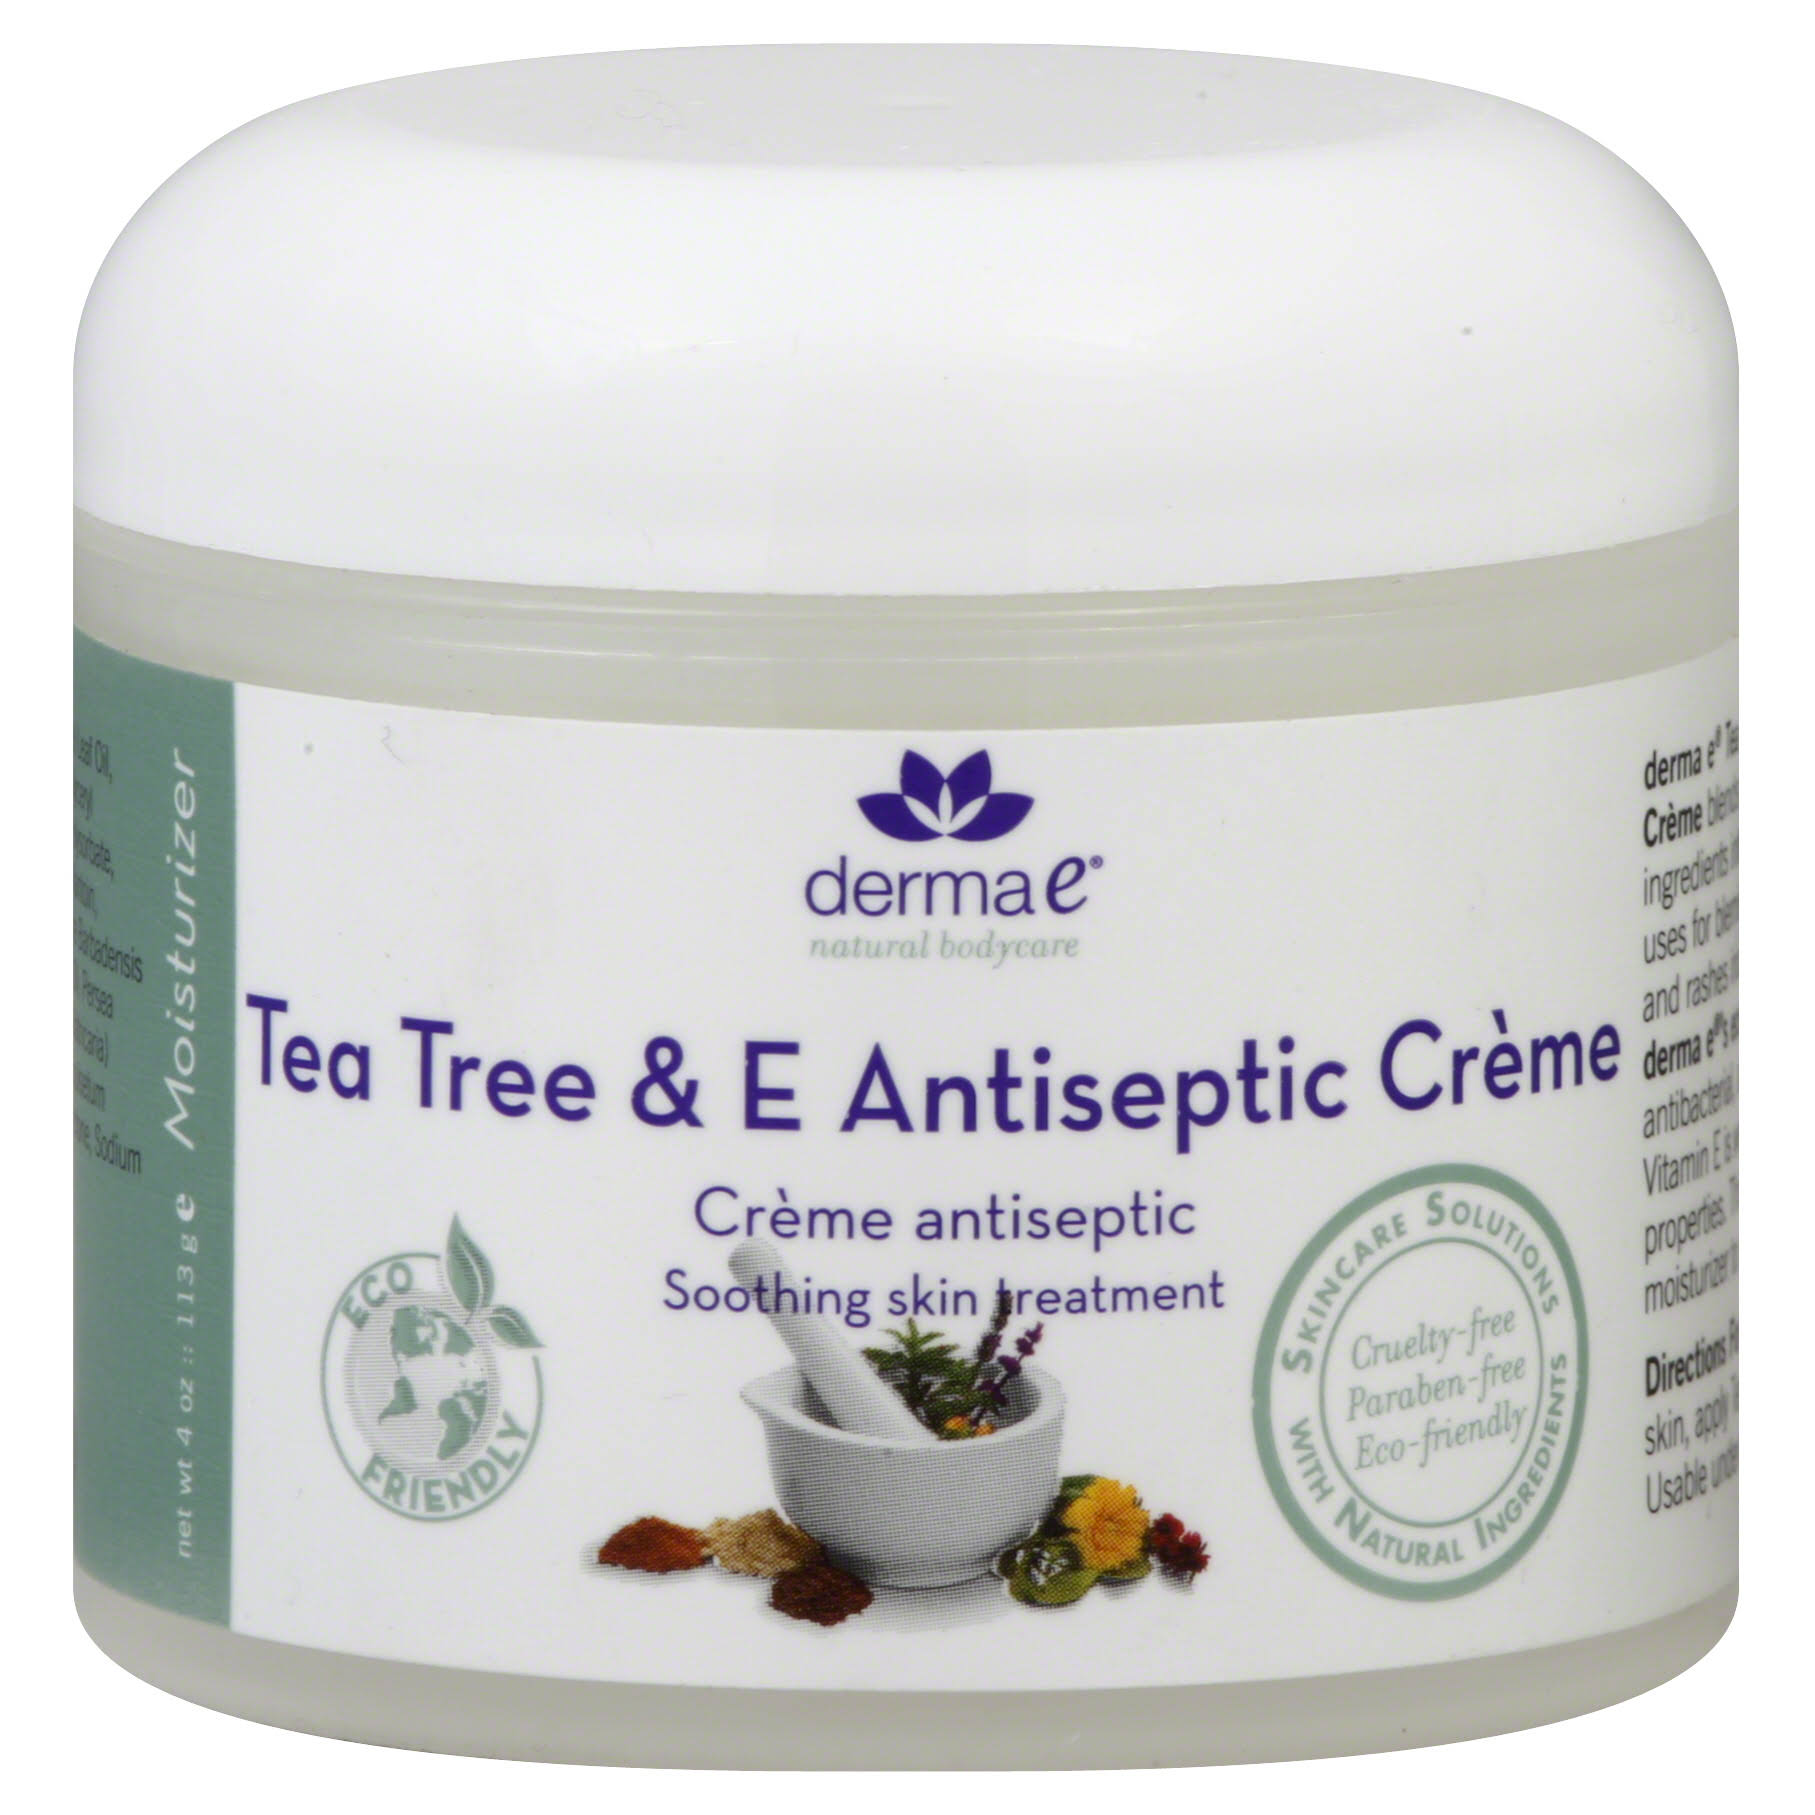 Derma E Tea Tree & E Antiseptic Creme - 4 oz